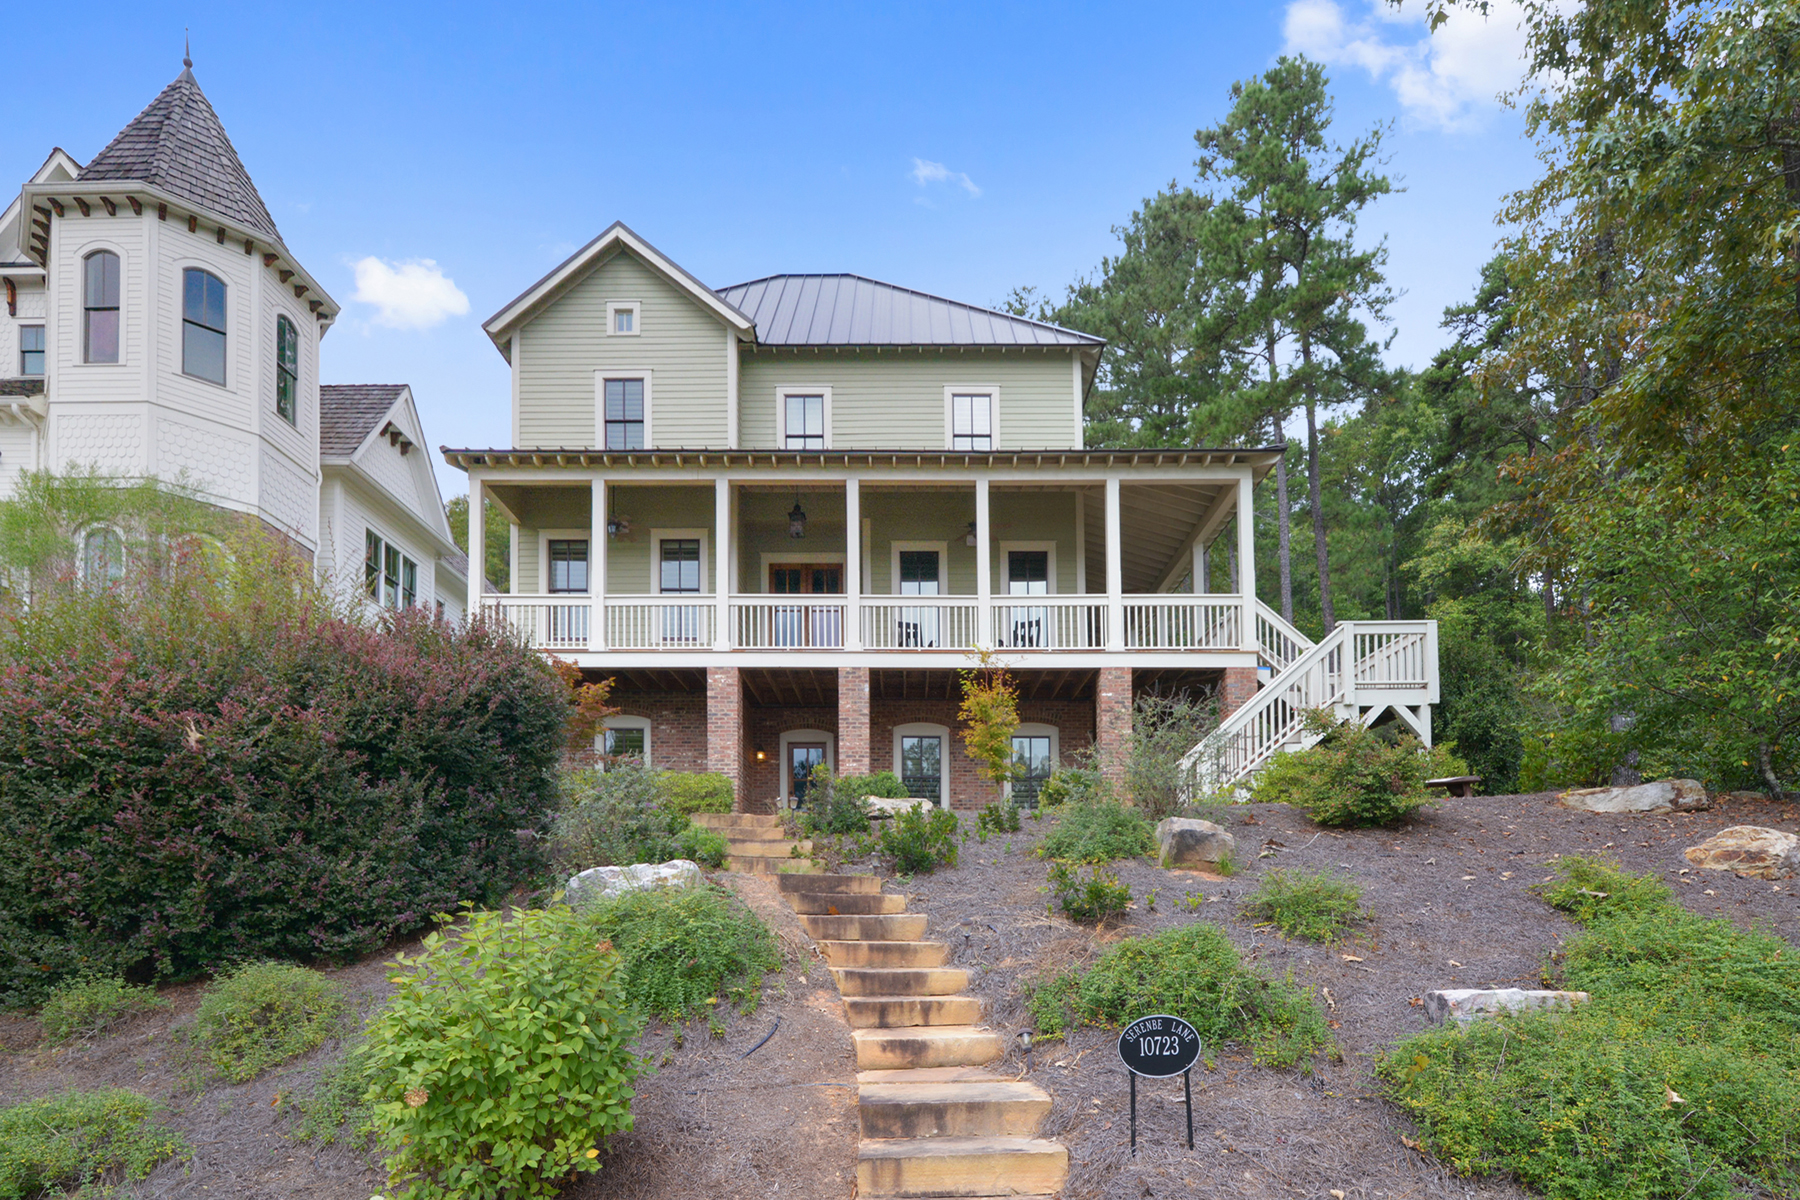 Additional photo for property listing at Upscale Serenbe Farmhouse-Style Home 10723 Serenbe Lane Chattahoochee Hills, Georgia 30268 Hoa Kỳ